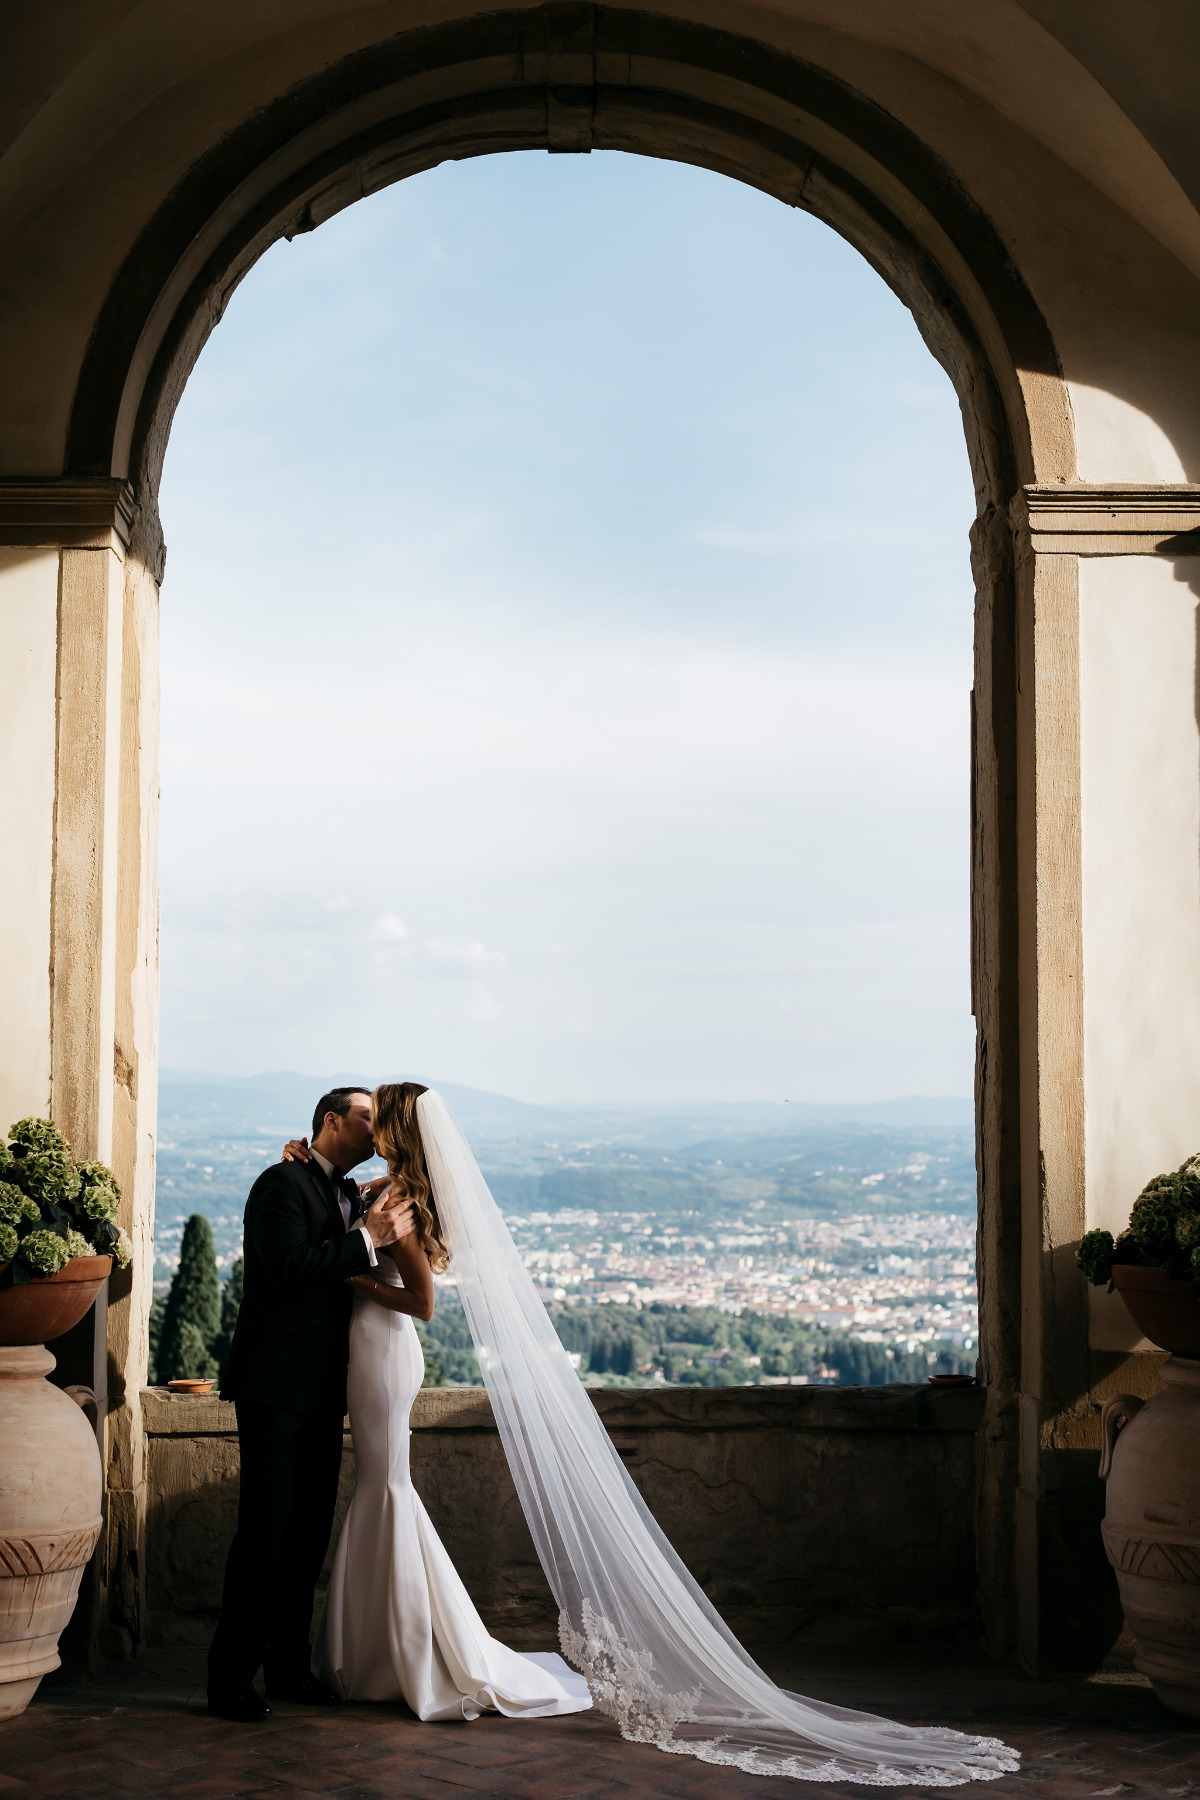 Dreamy Italian wedding